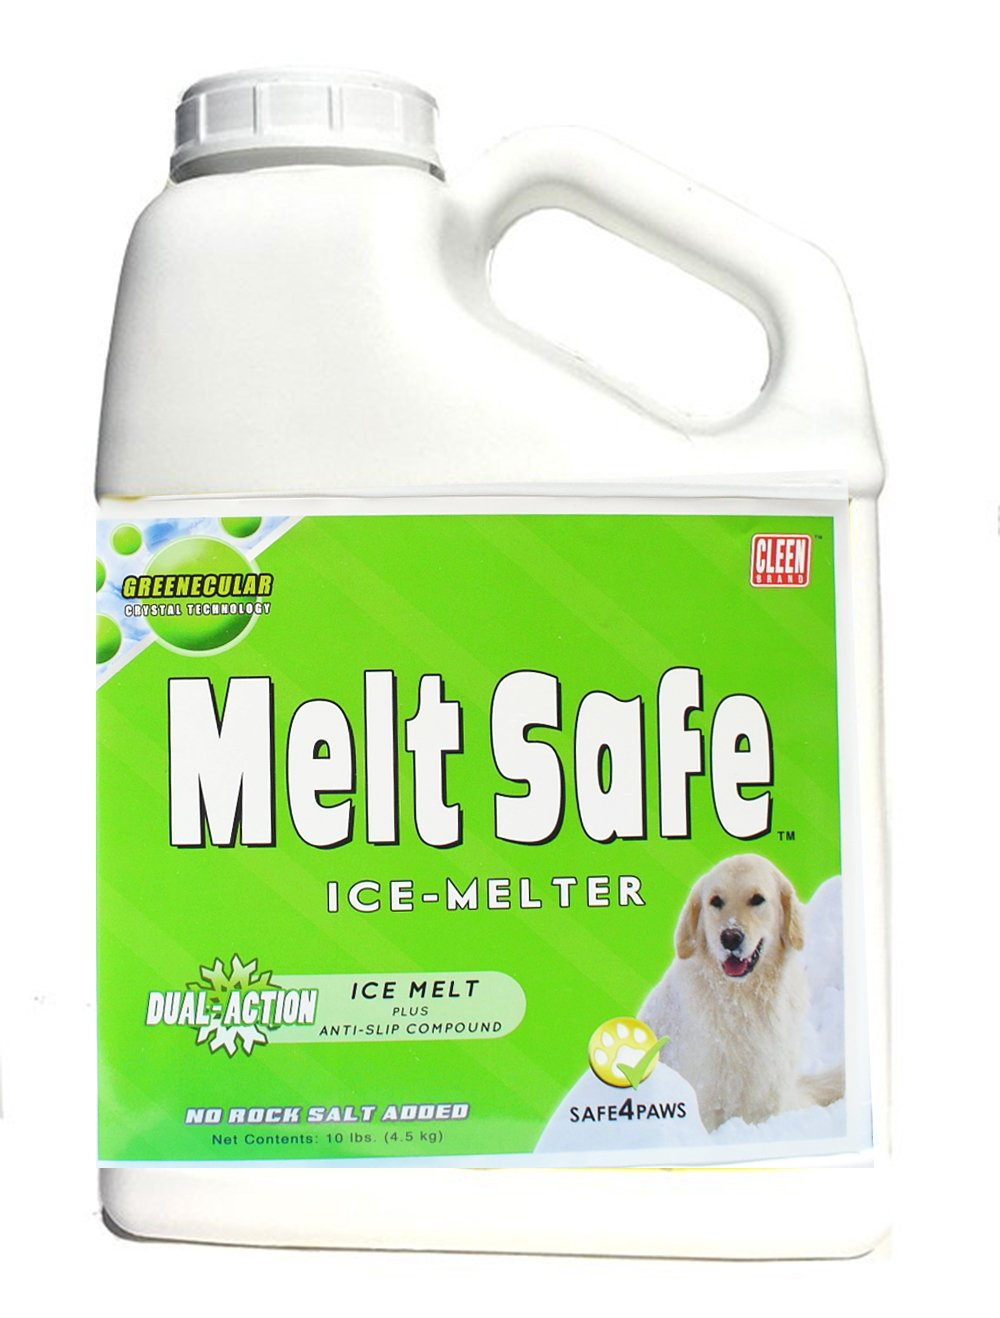 Cleen Products MELT Safe - Ice Melt for Pets - 10-lb Size - Safe for use as a Snow and ice Melter on driveways and Sidewalks - Easy-Shake Container by Cleen Products